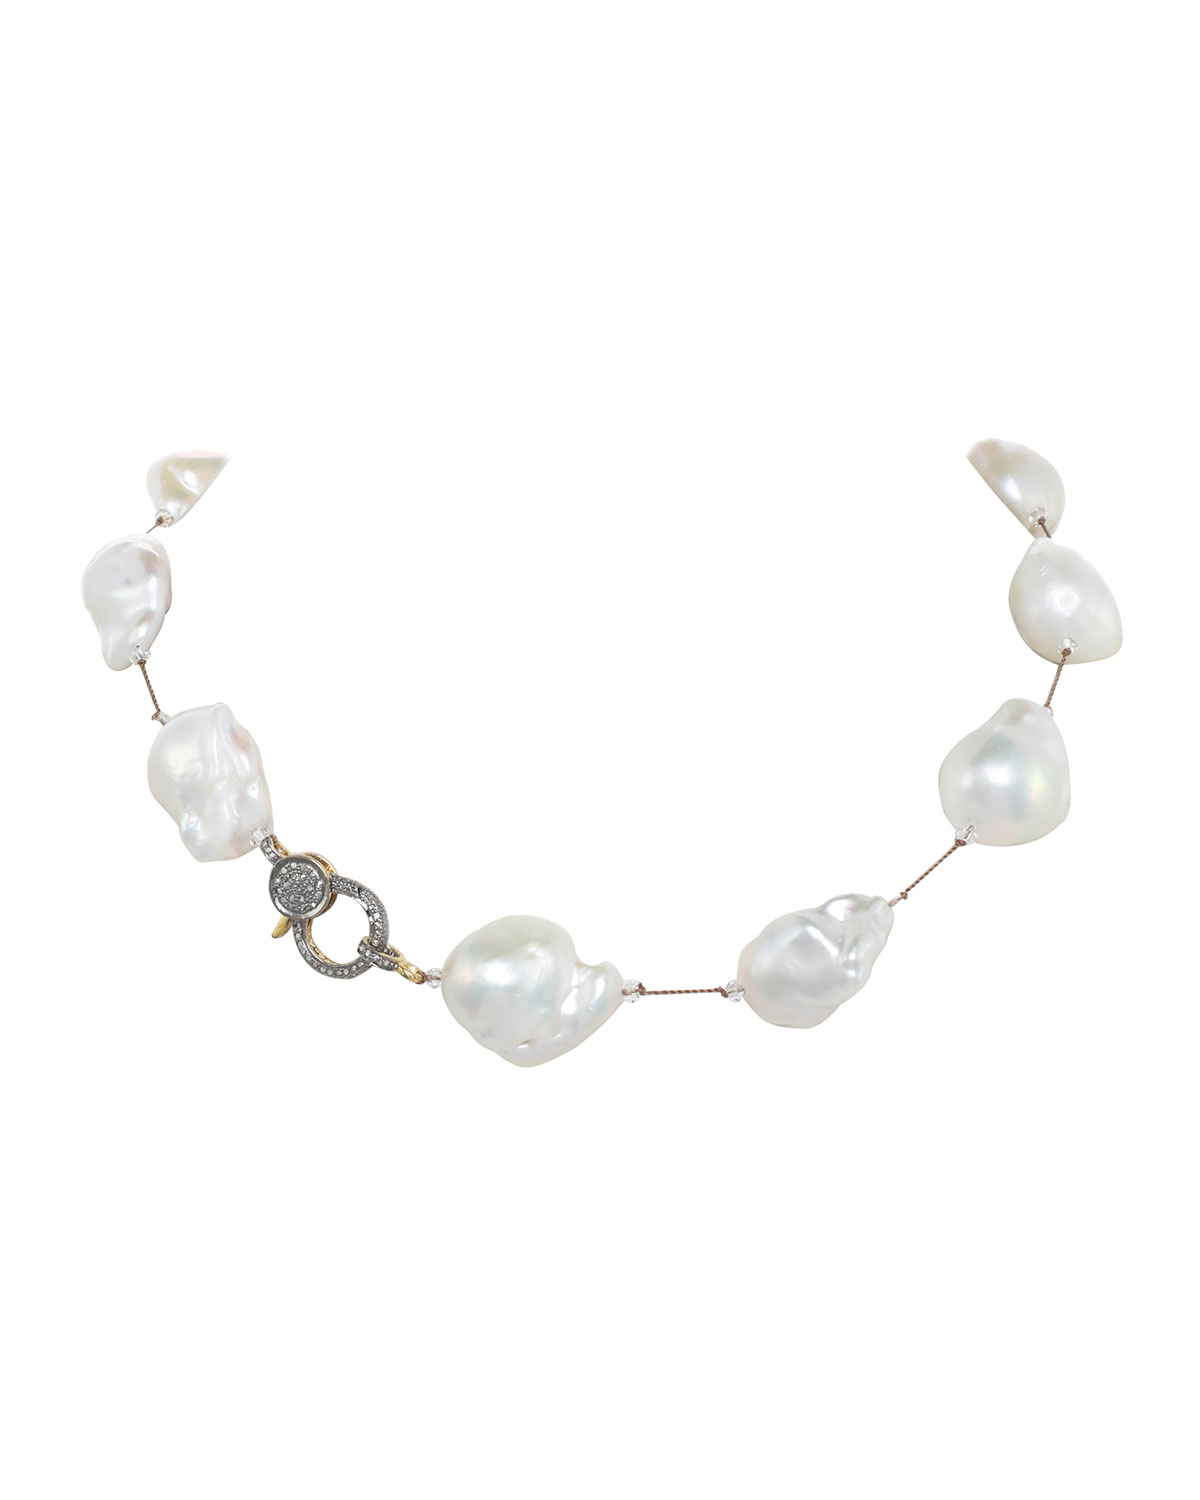 Large White Baroque Pearl Necklace with Diamond Clasp